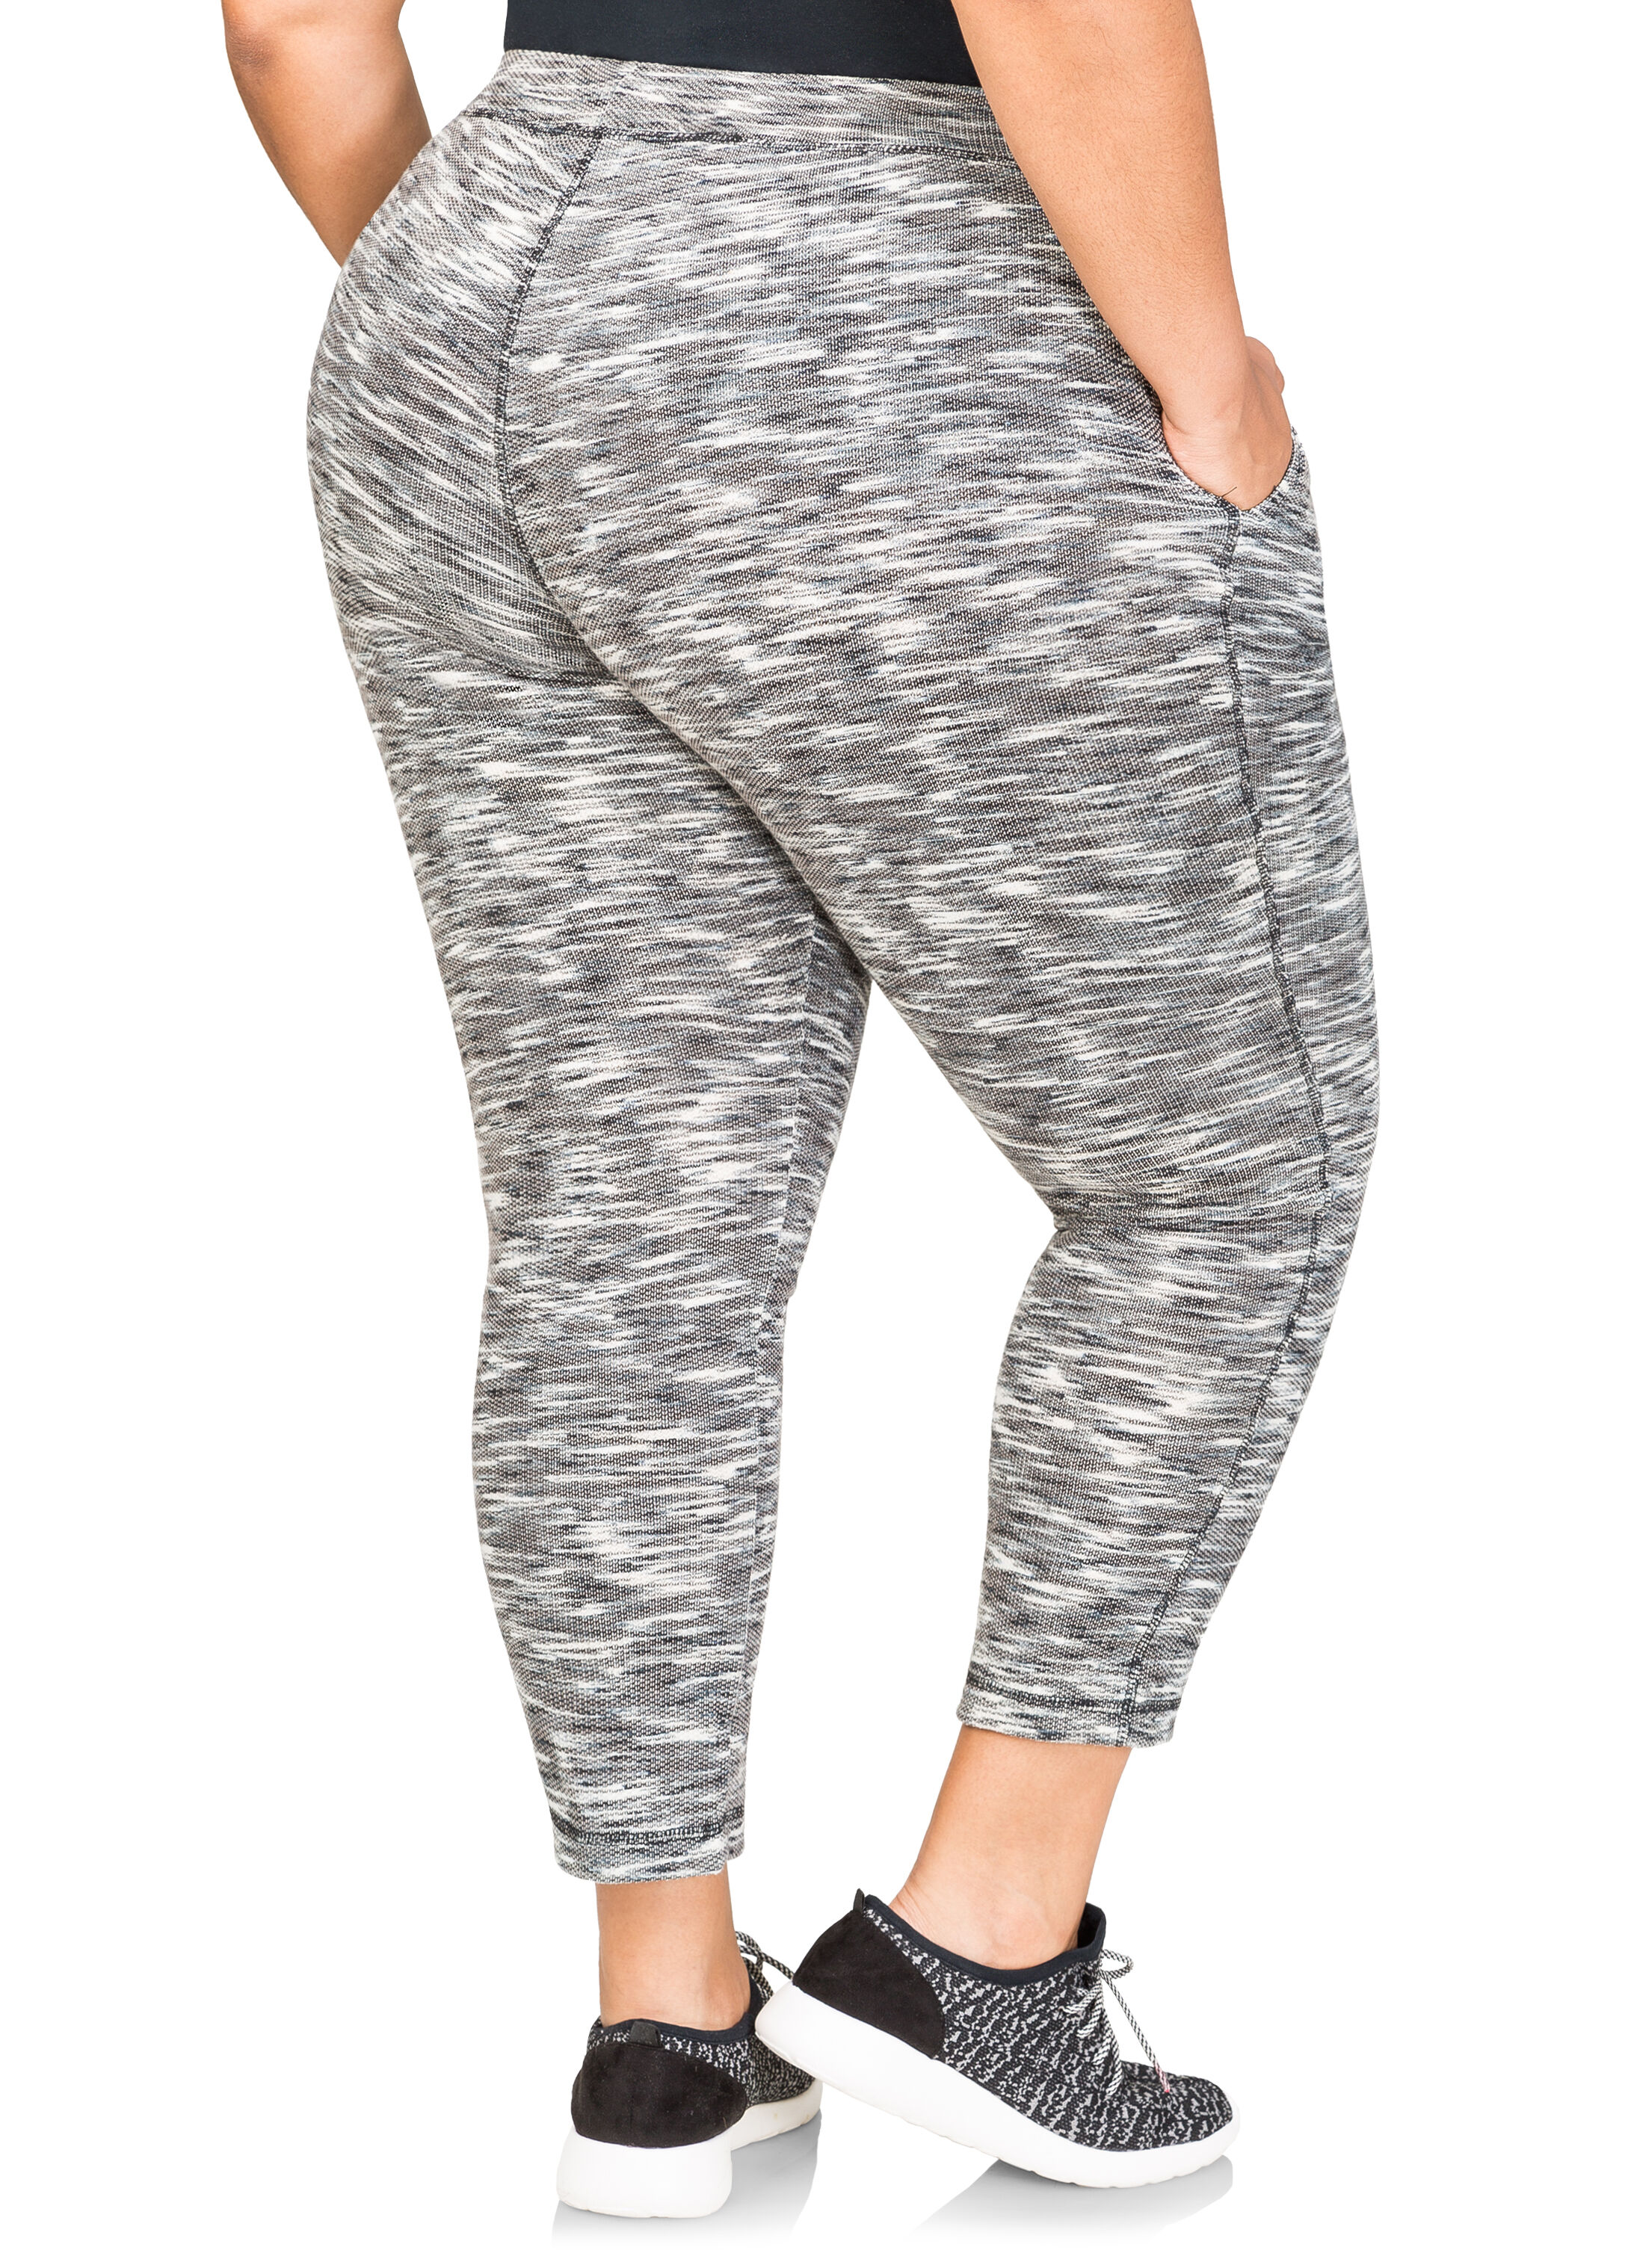 Mélange French Terry Active Pants